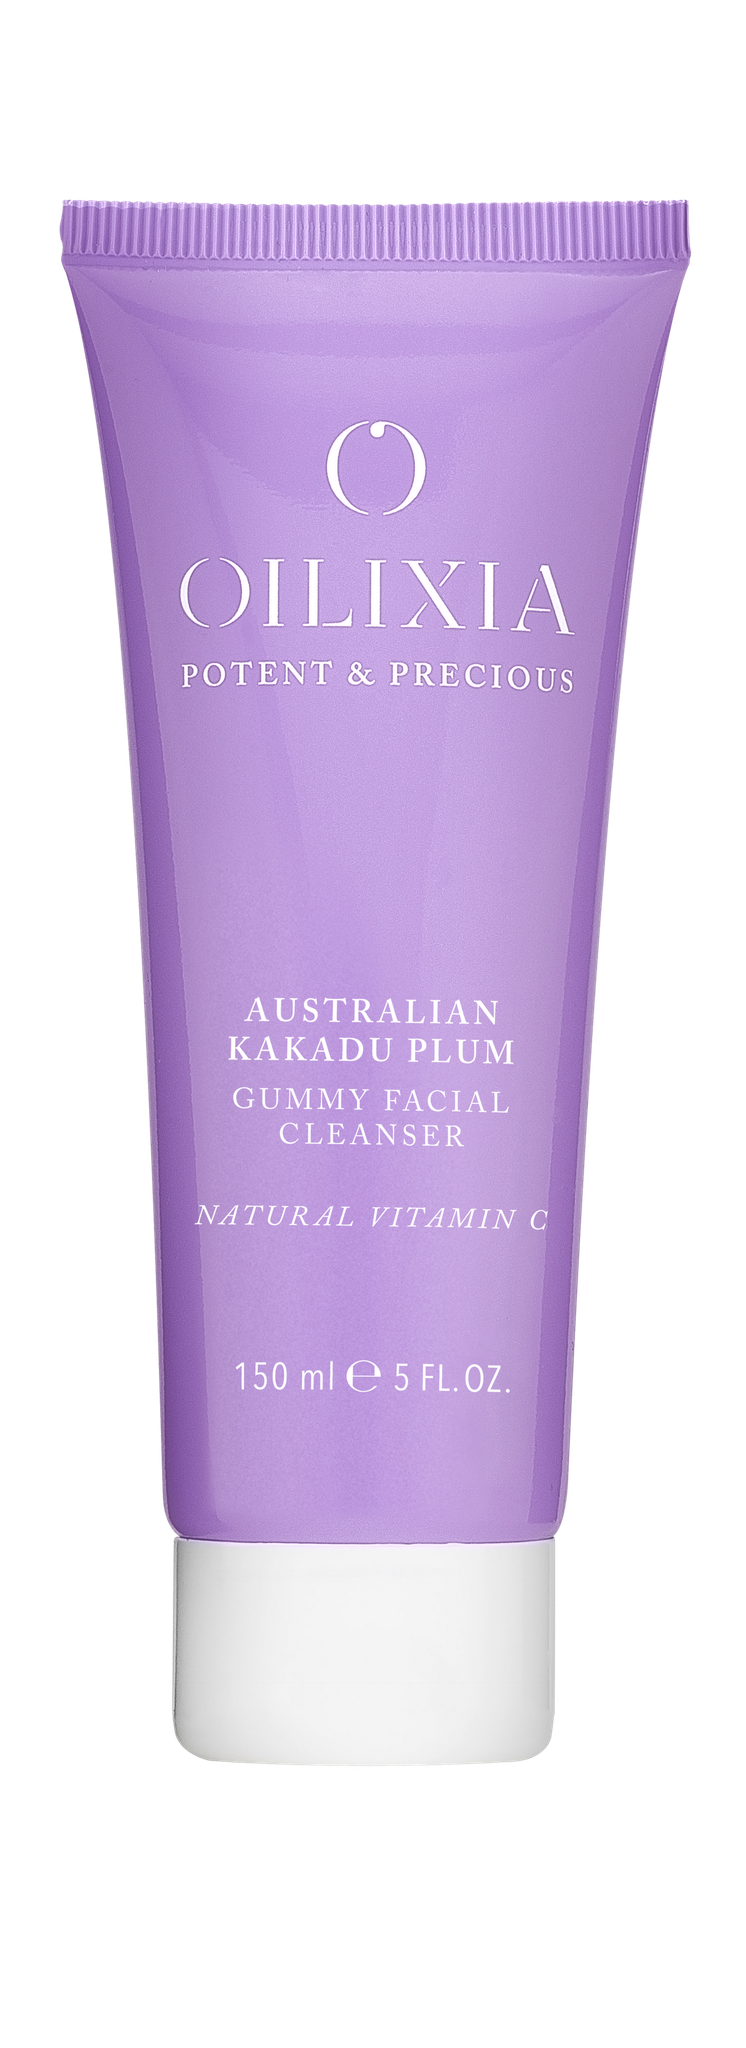 Oilixia Kakadu Plum Gummy Facial Cleanser - Supersize 150ml